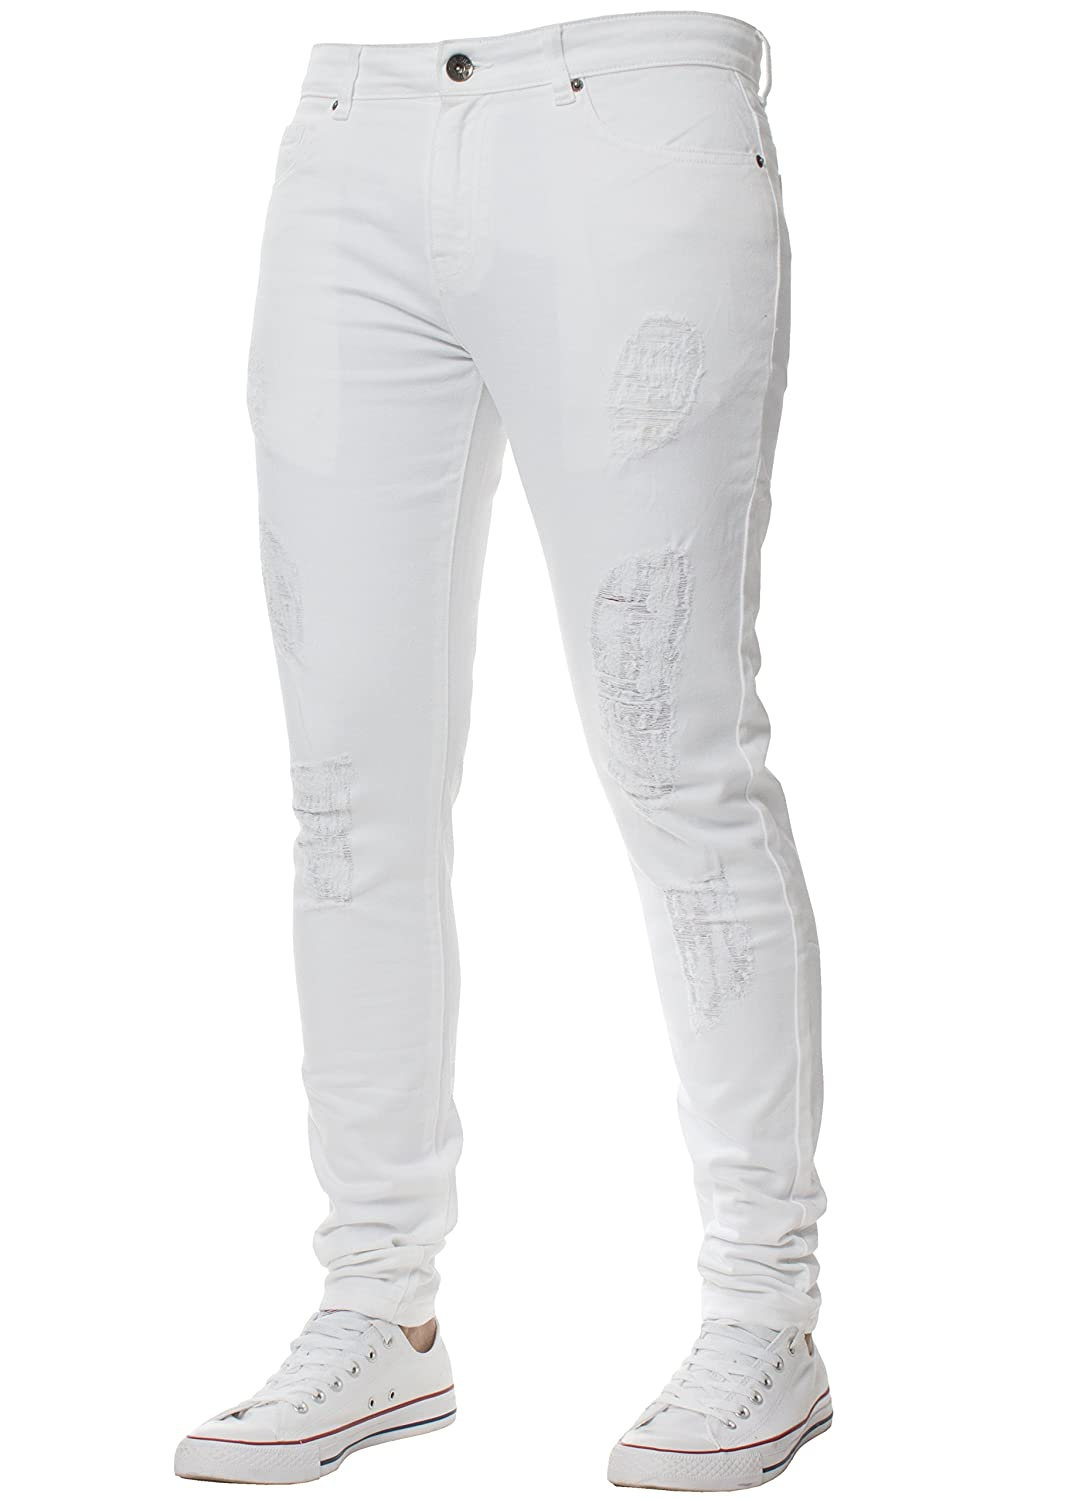 Range of Waist Sizes and Colours Available Enzo Super Skinny Stretch Jeans for Men Denim